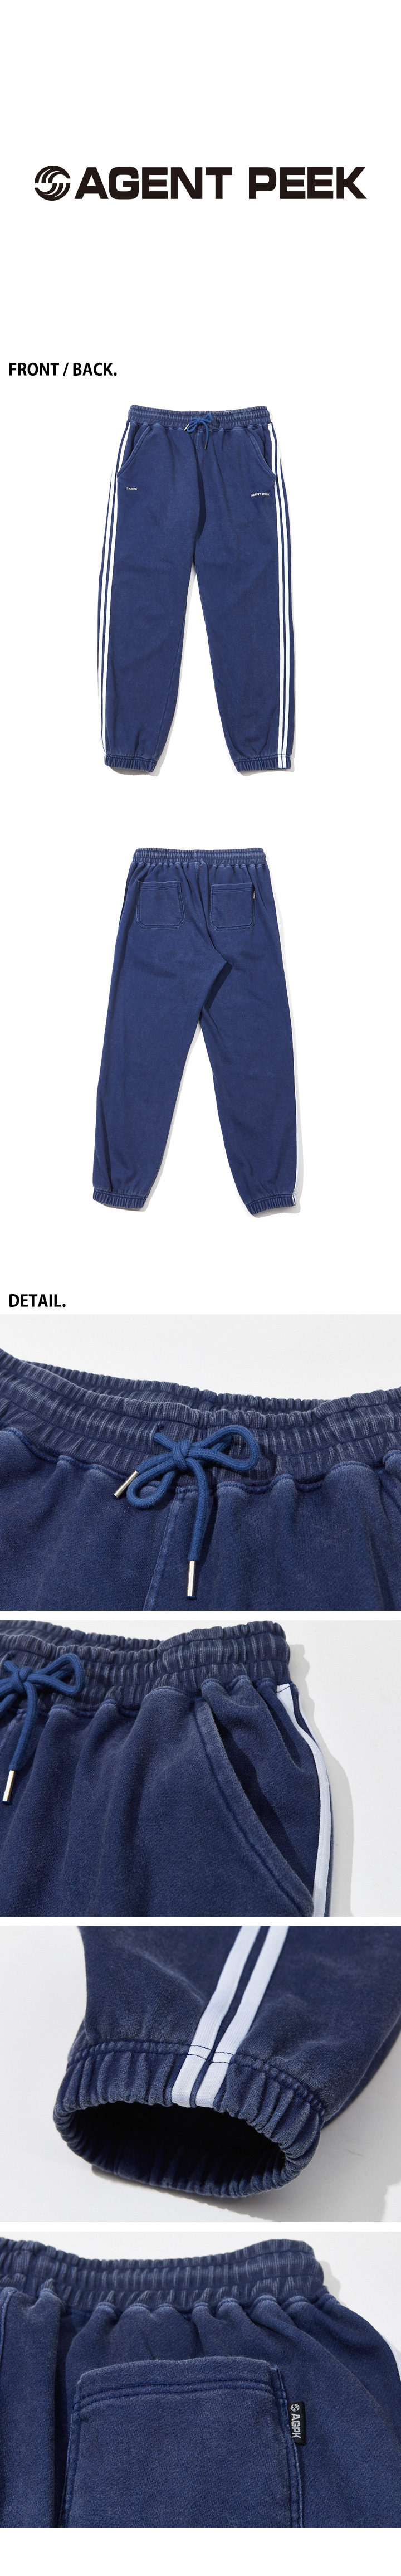 03_TAPEPANTS_NAVY.jpg